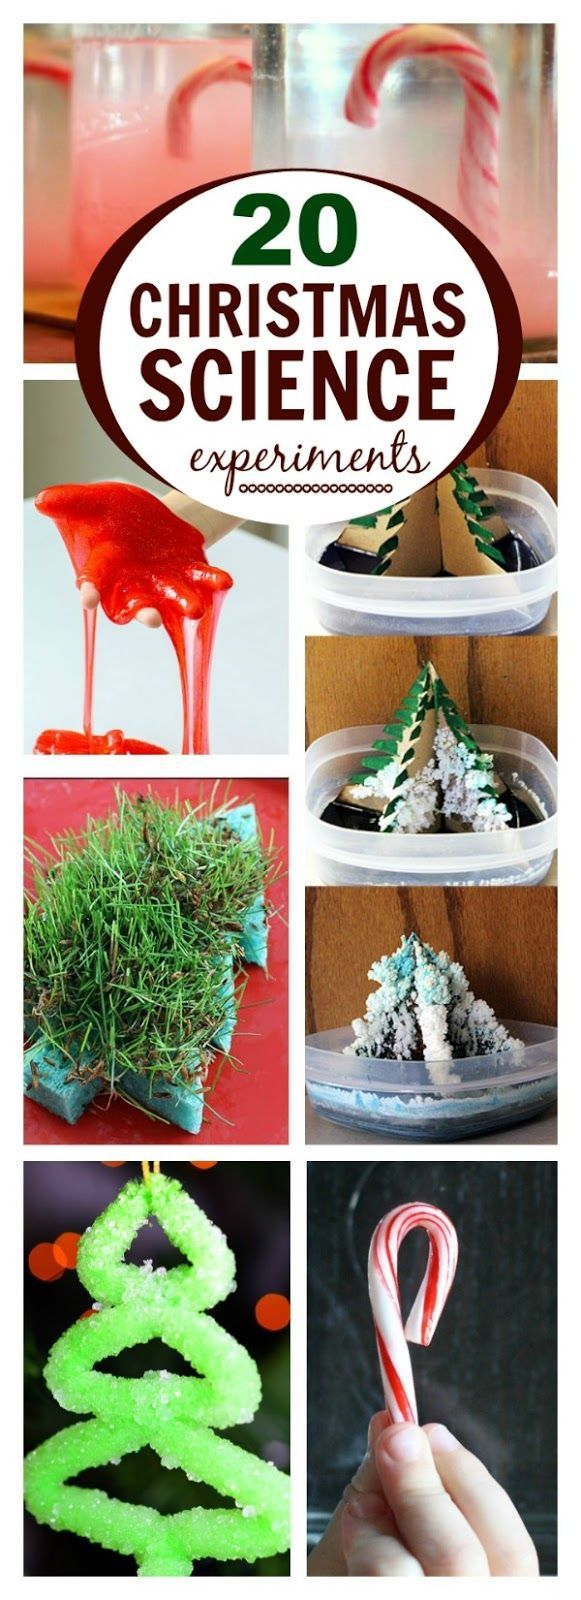 115 best Teaching Ideas images by Charlene Fiore on Pinterest ...